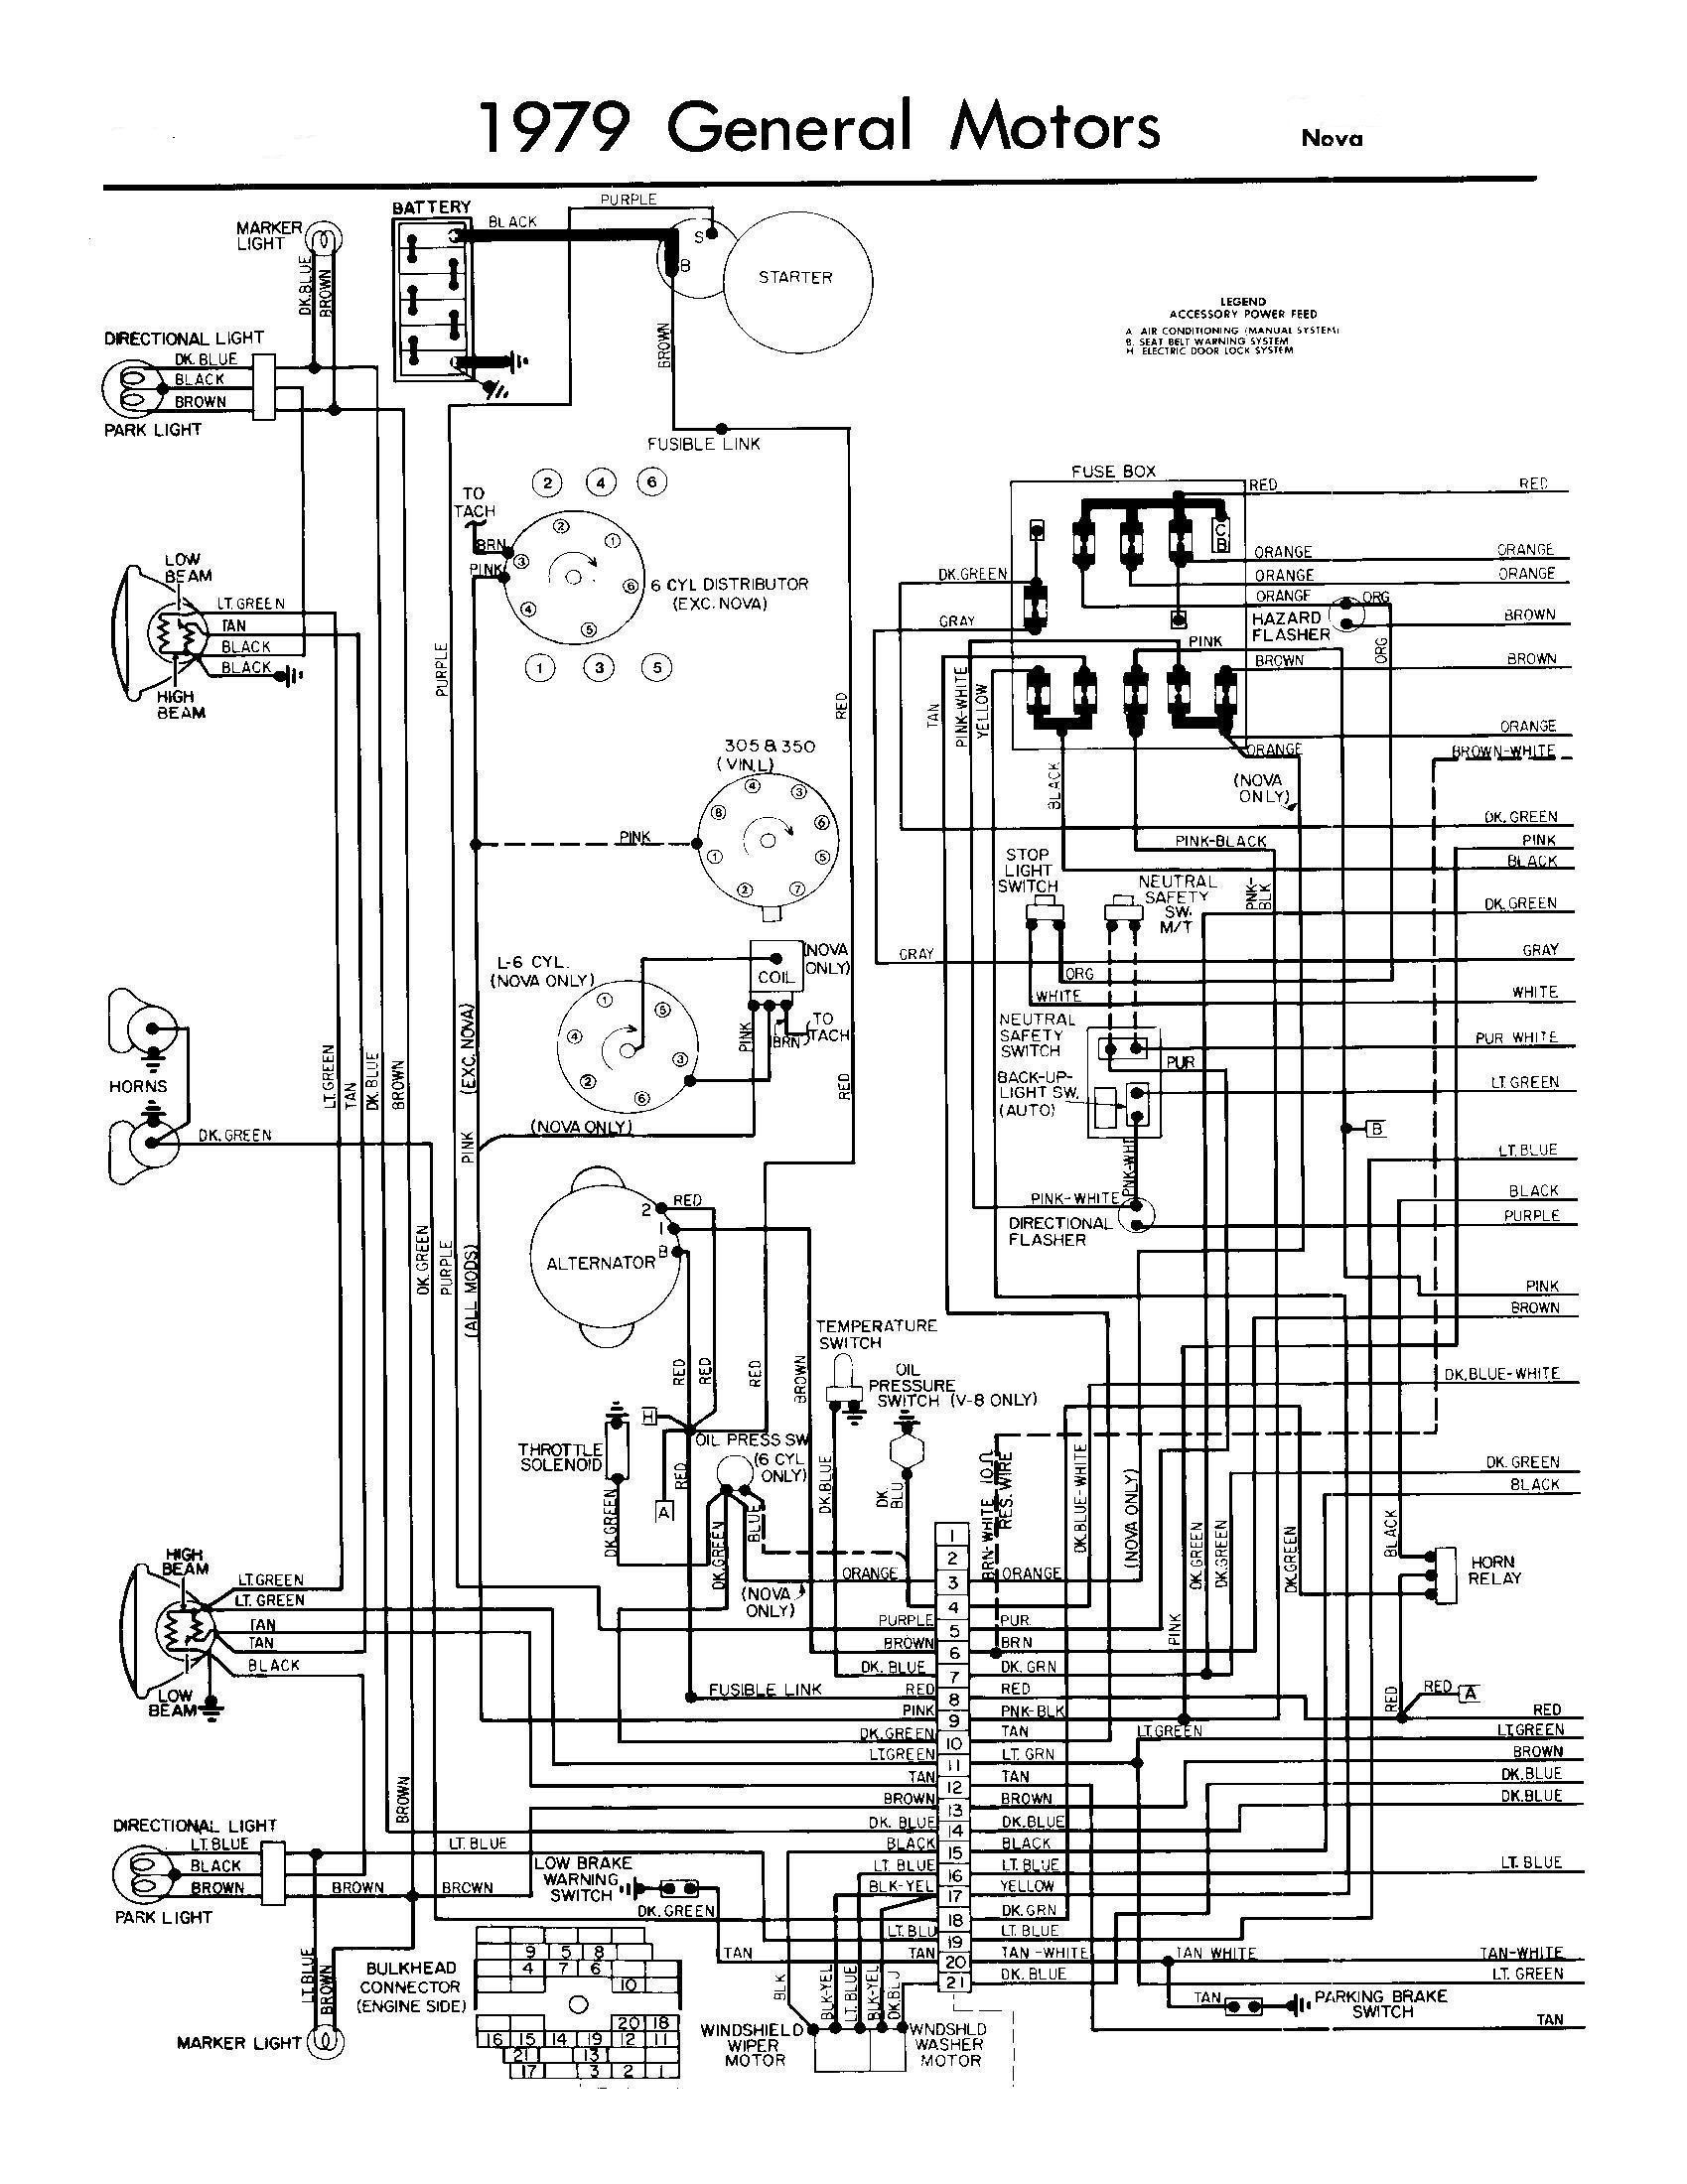 E68 Meyer Snow Plow Wiring Diagram